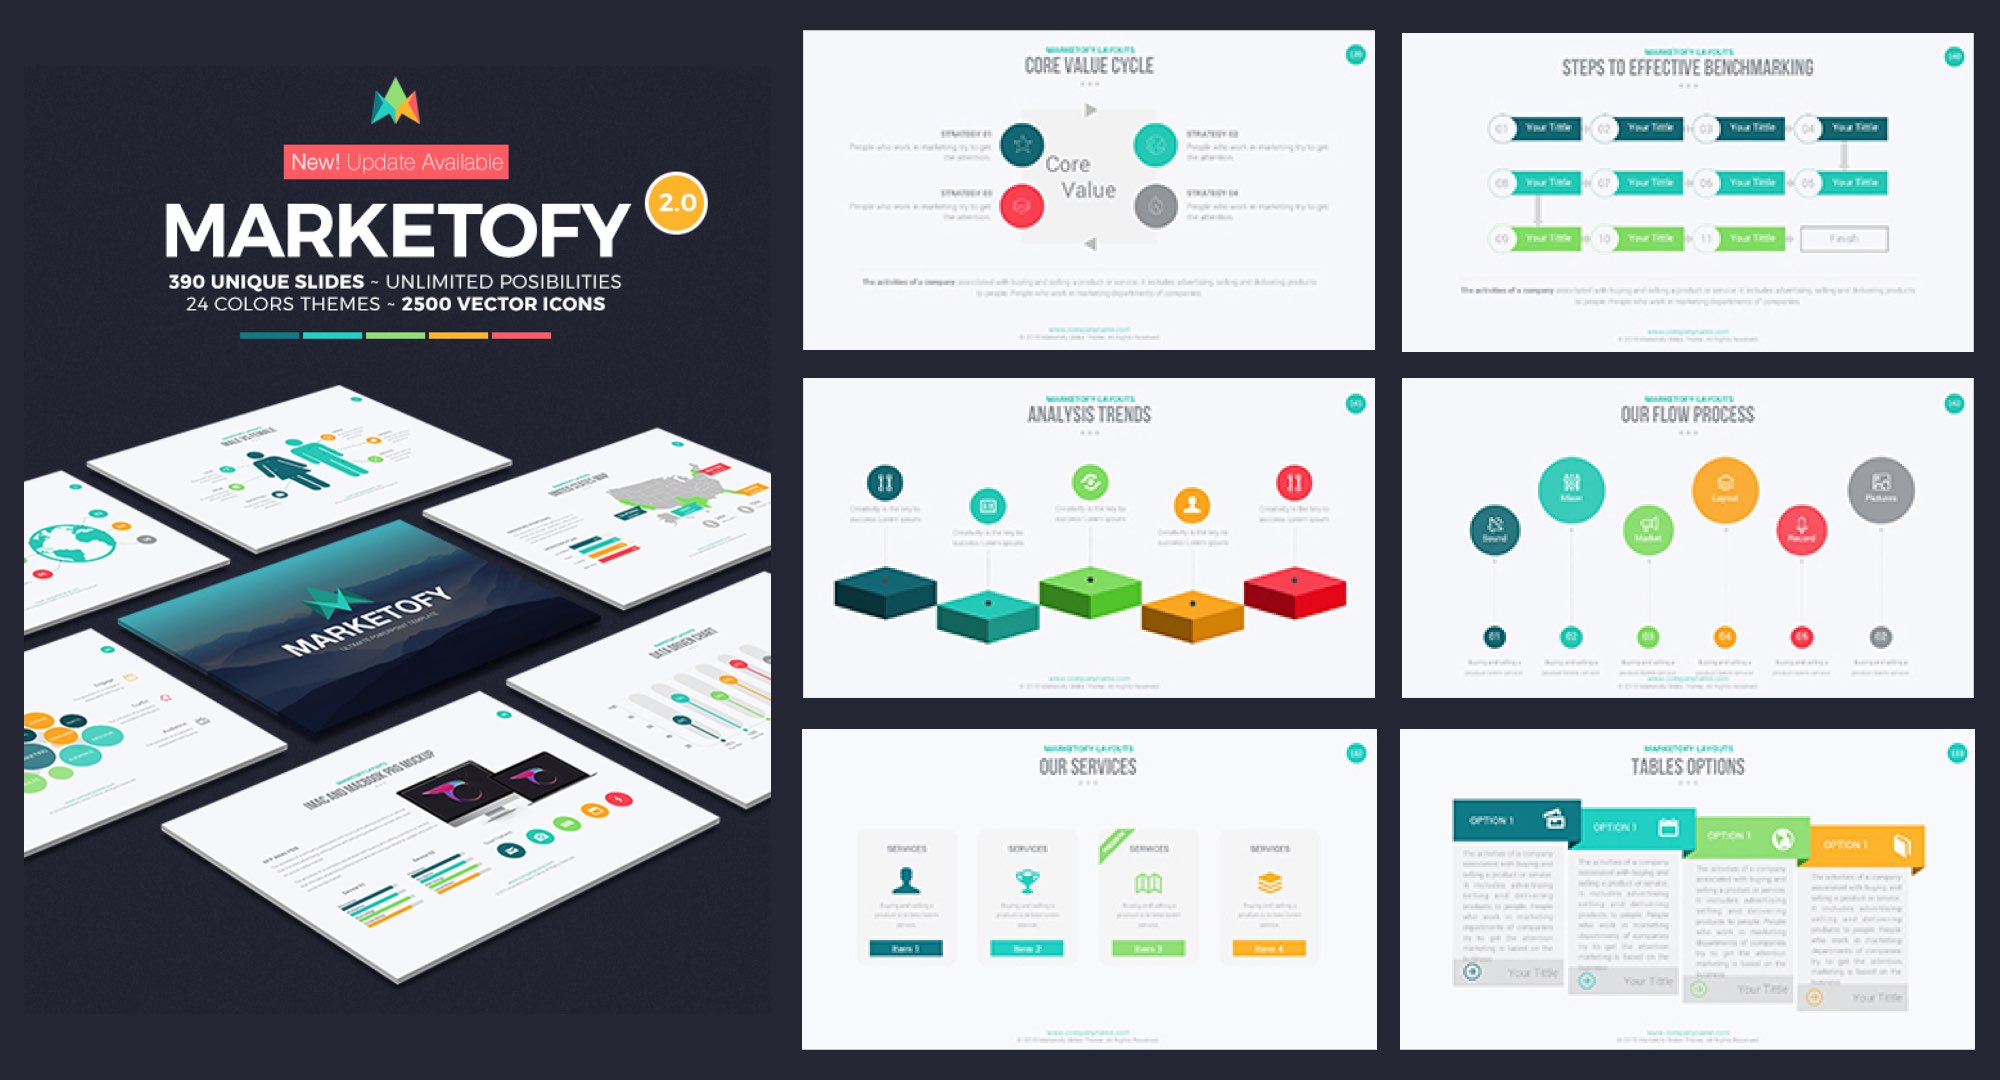 Creative Presentations 41 Powerful Techniques Ideas Title Star 6 Keywords Ppt Powerpoint Drawing Diagrams Templates Marketofy Template